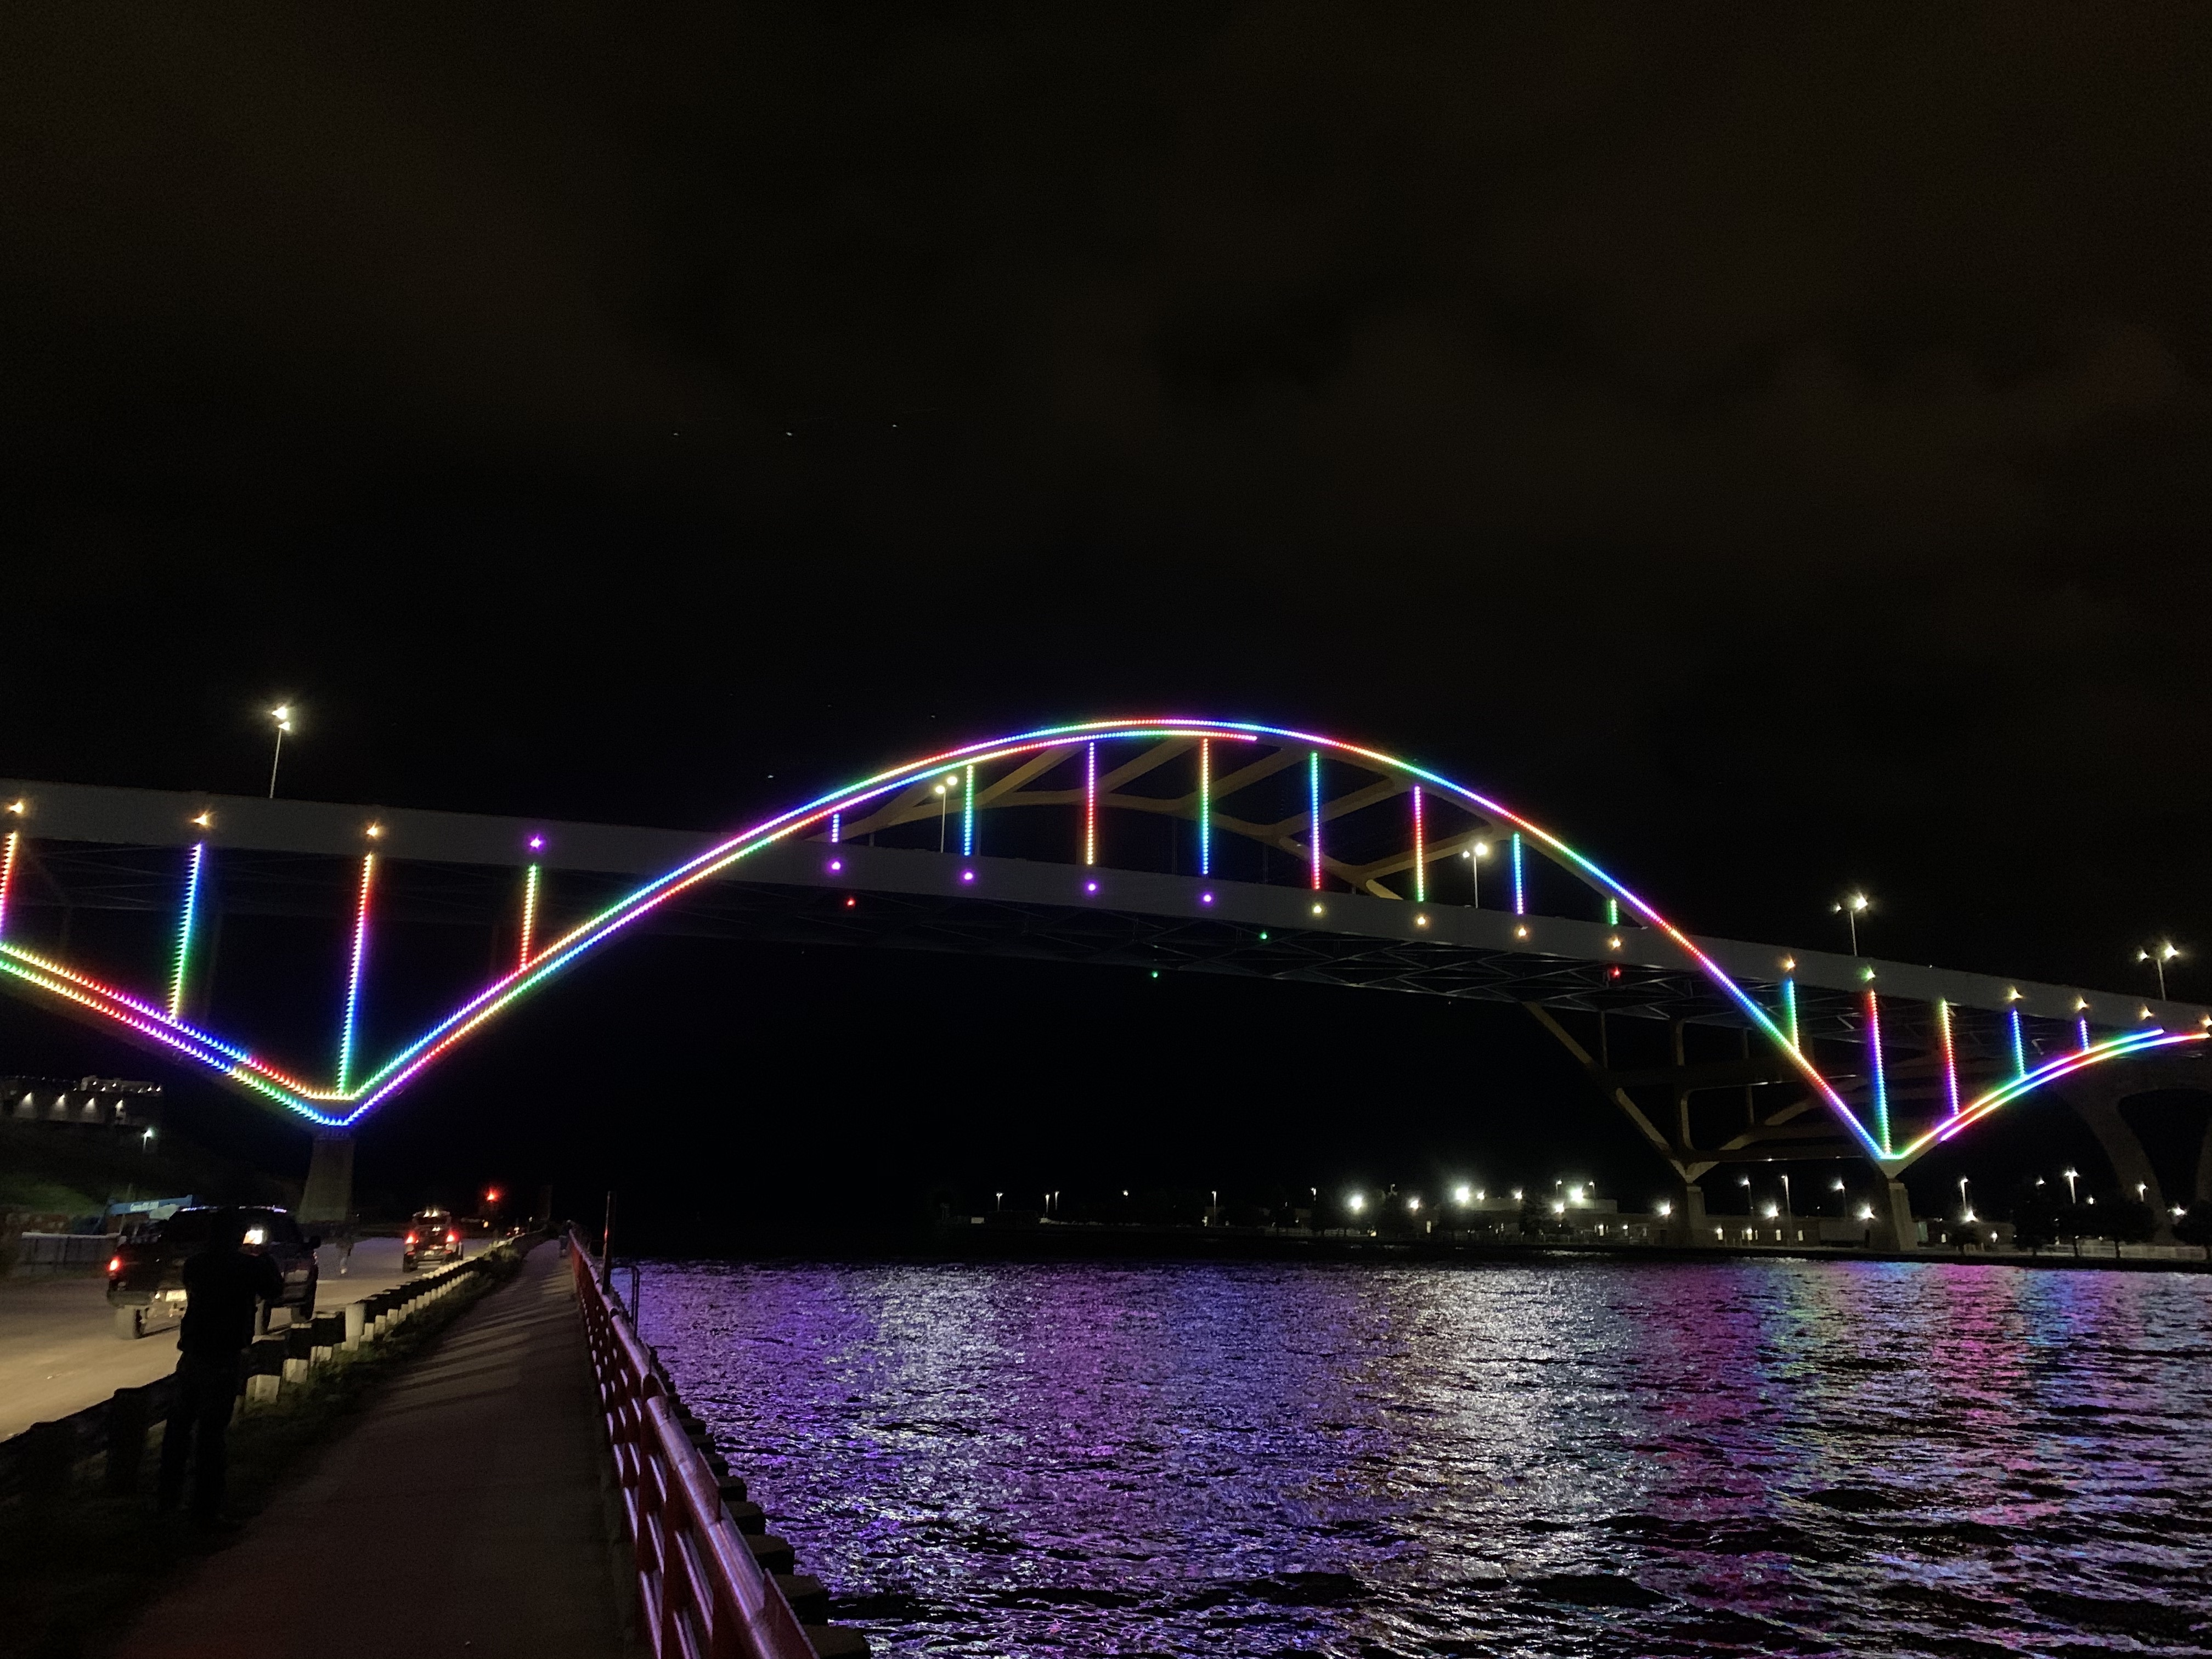 Light the Hoan — First look at bridge's arches lit up over the city: Slideshow